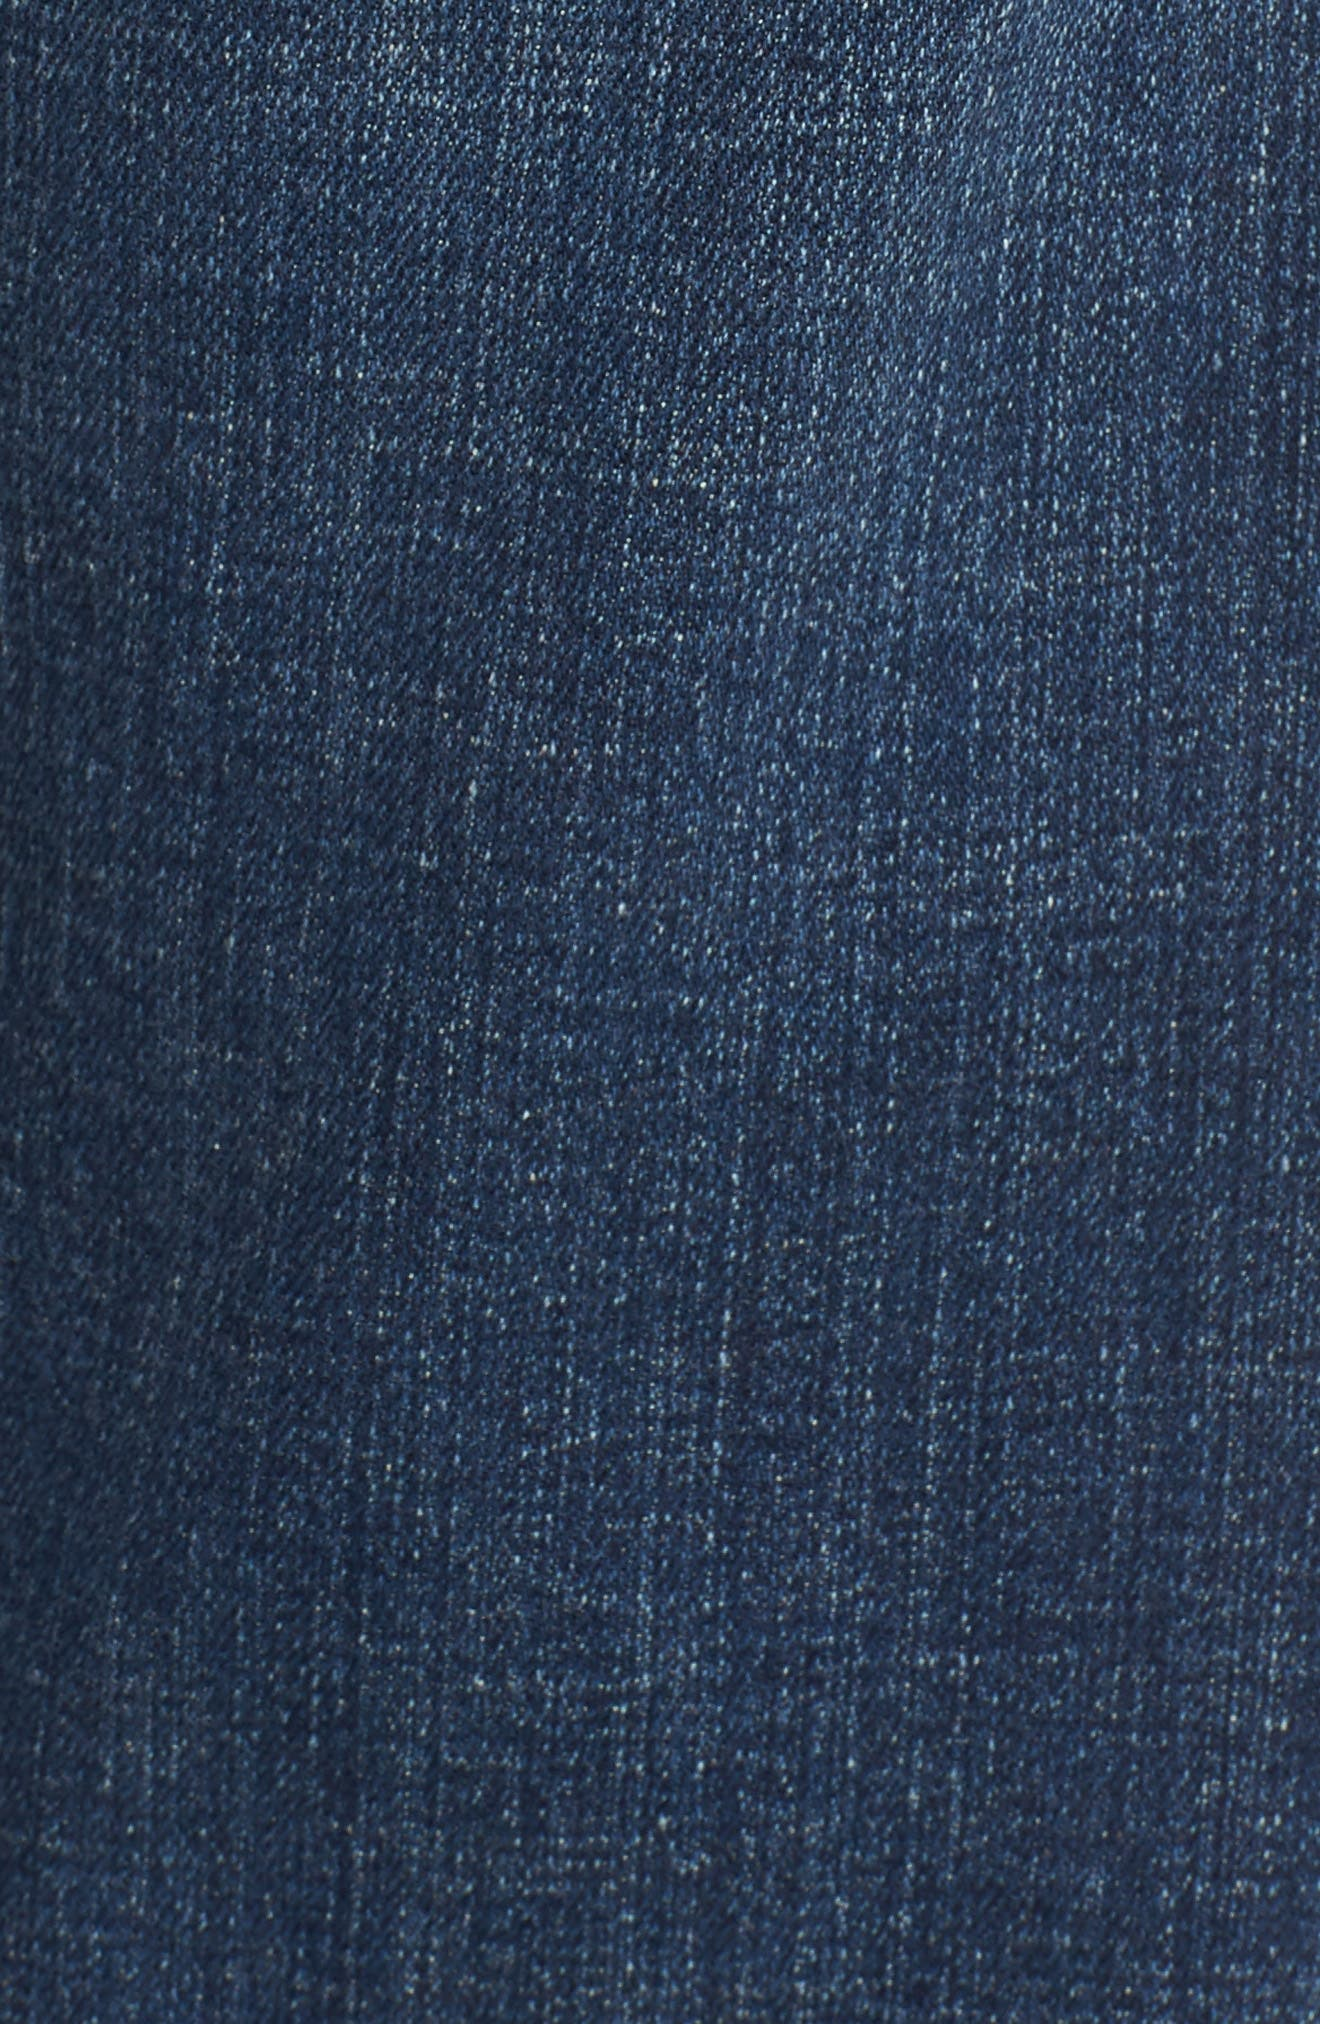 Tapered Stretch Organic Cotton Crop Jeans,                             Alternate thumbnail 6, color,                             Abraded Aged Indigo